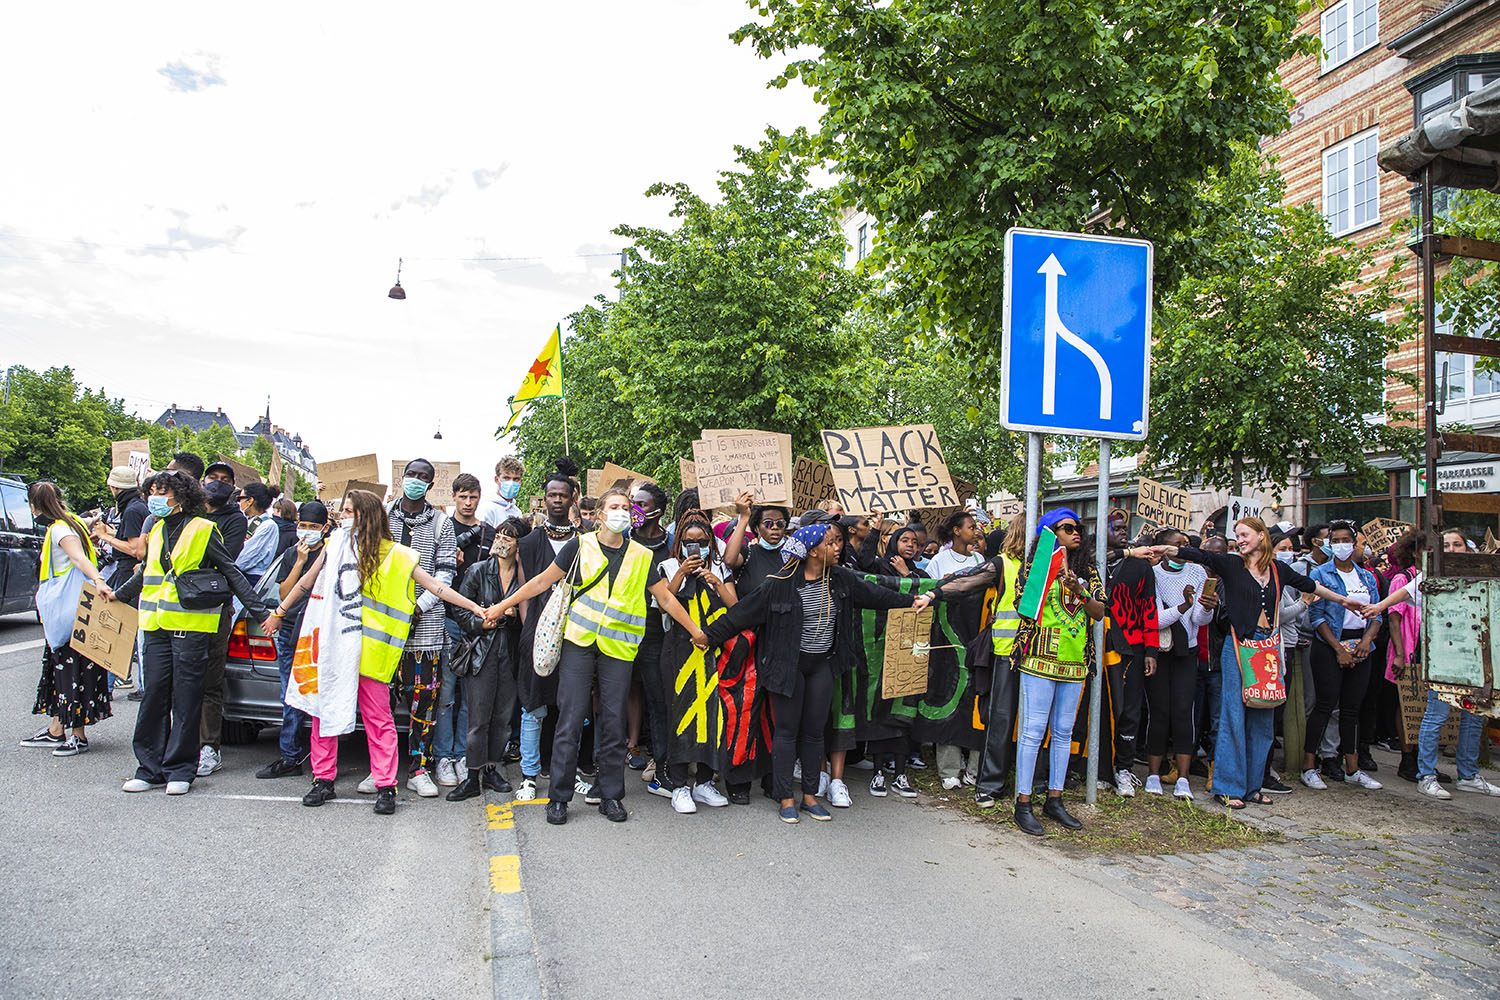 BlackLivesMatterDK_DEMO_070620_HelenaLundquist_24